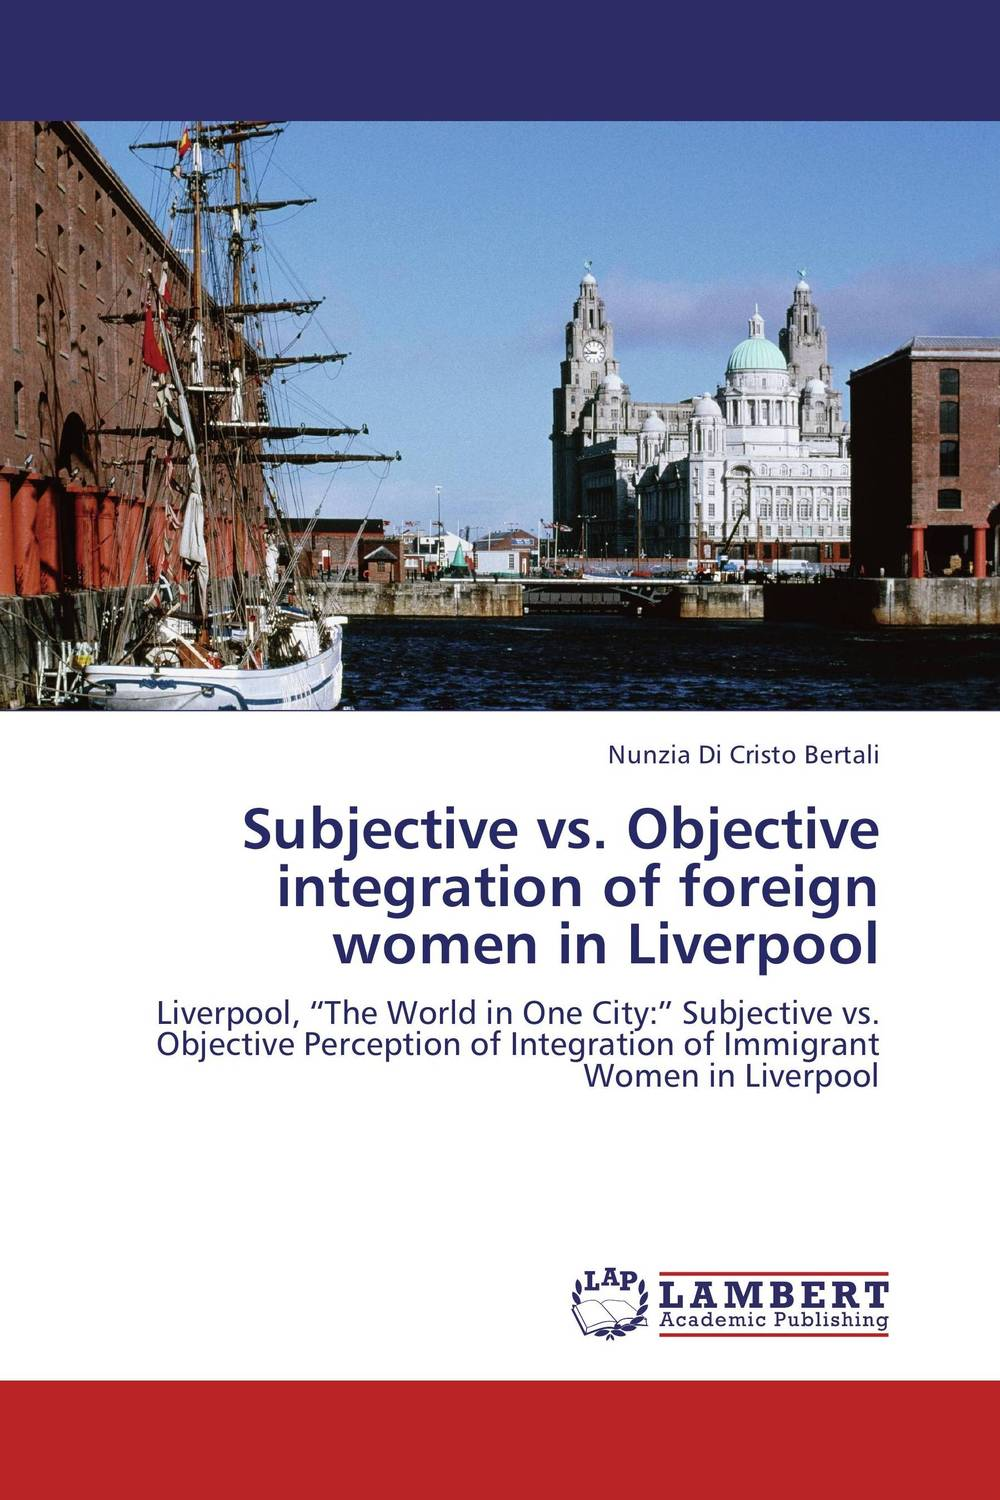 Subjective vs. Objective integration of foreign women in Liverpool dincer ozer and hasan ayd n integration of turkish women in the netherlands